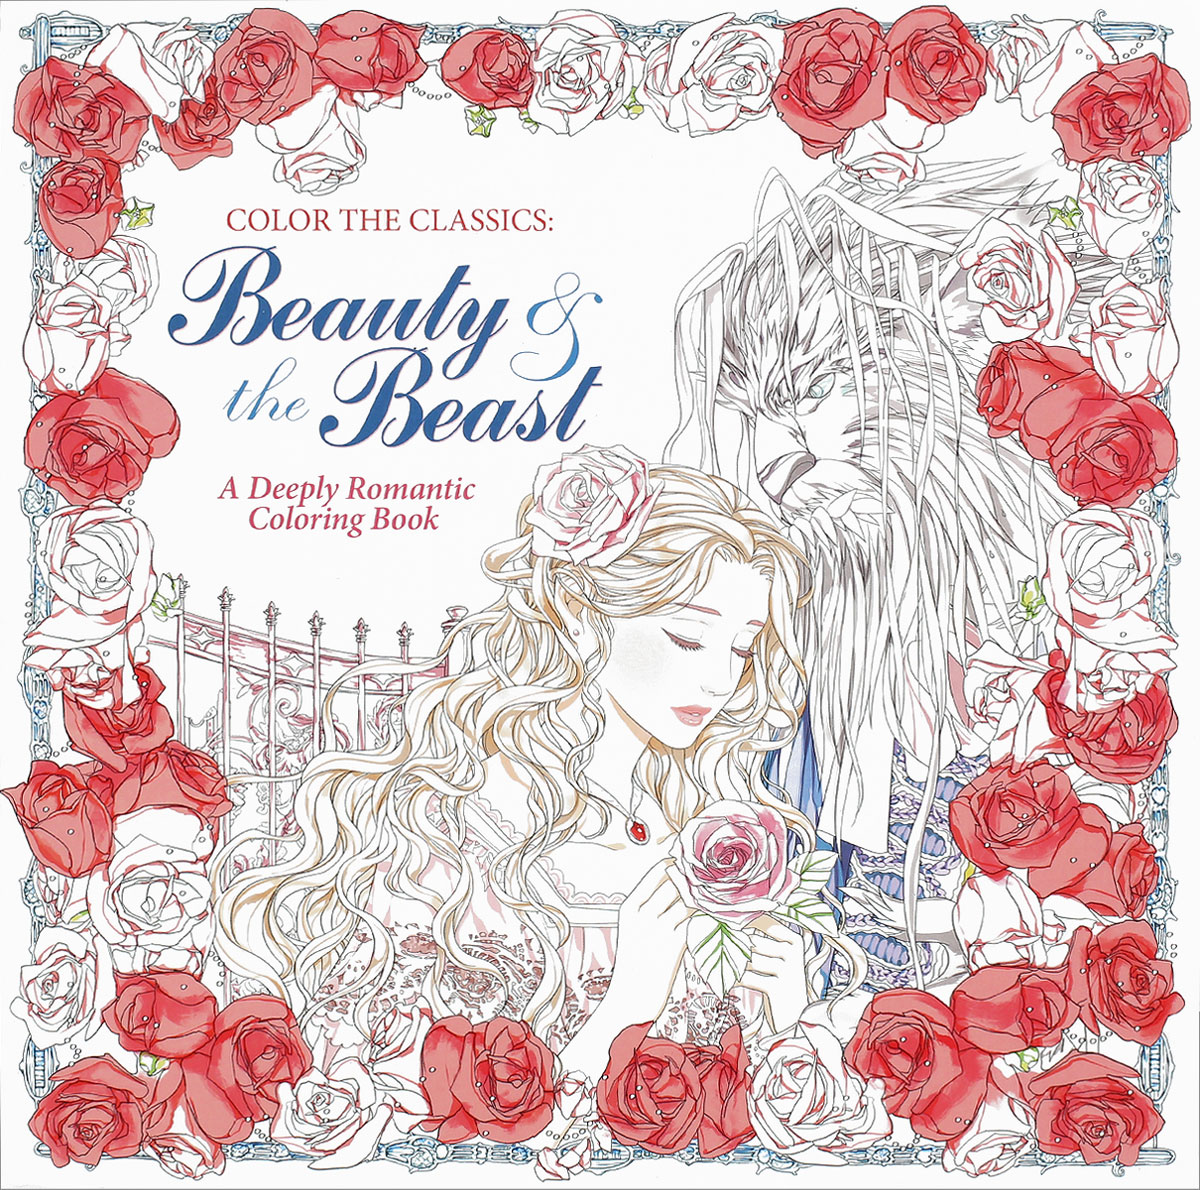 Color the Classics: Beauty & the Beast: A Deeply Romantic Coloring Book coloring of trees